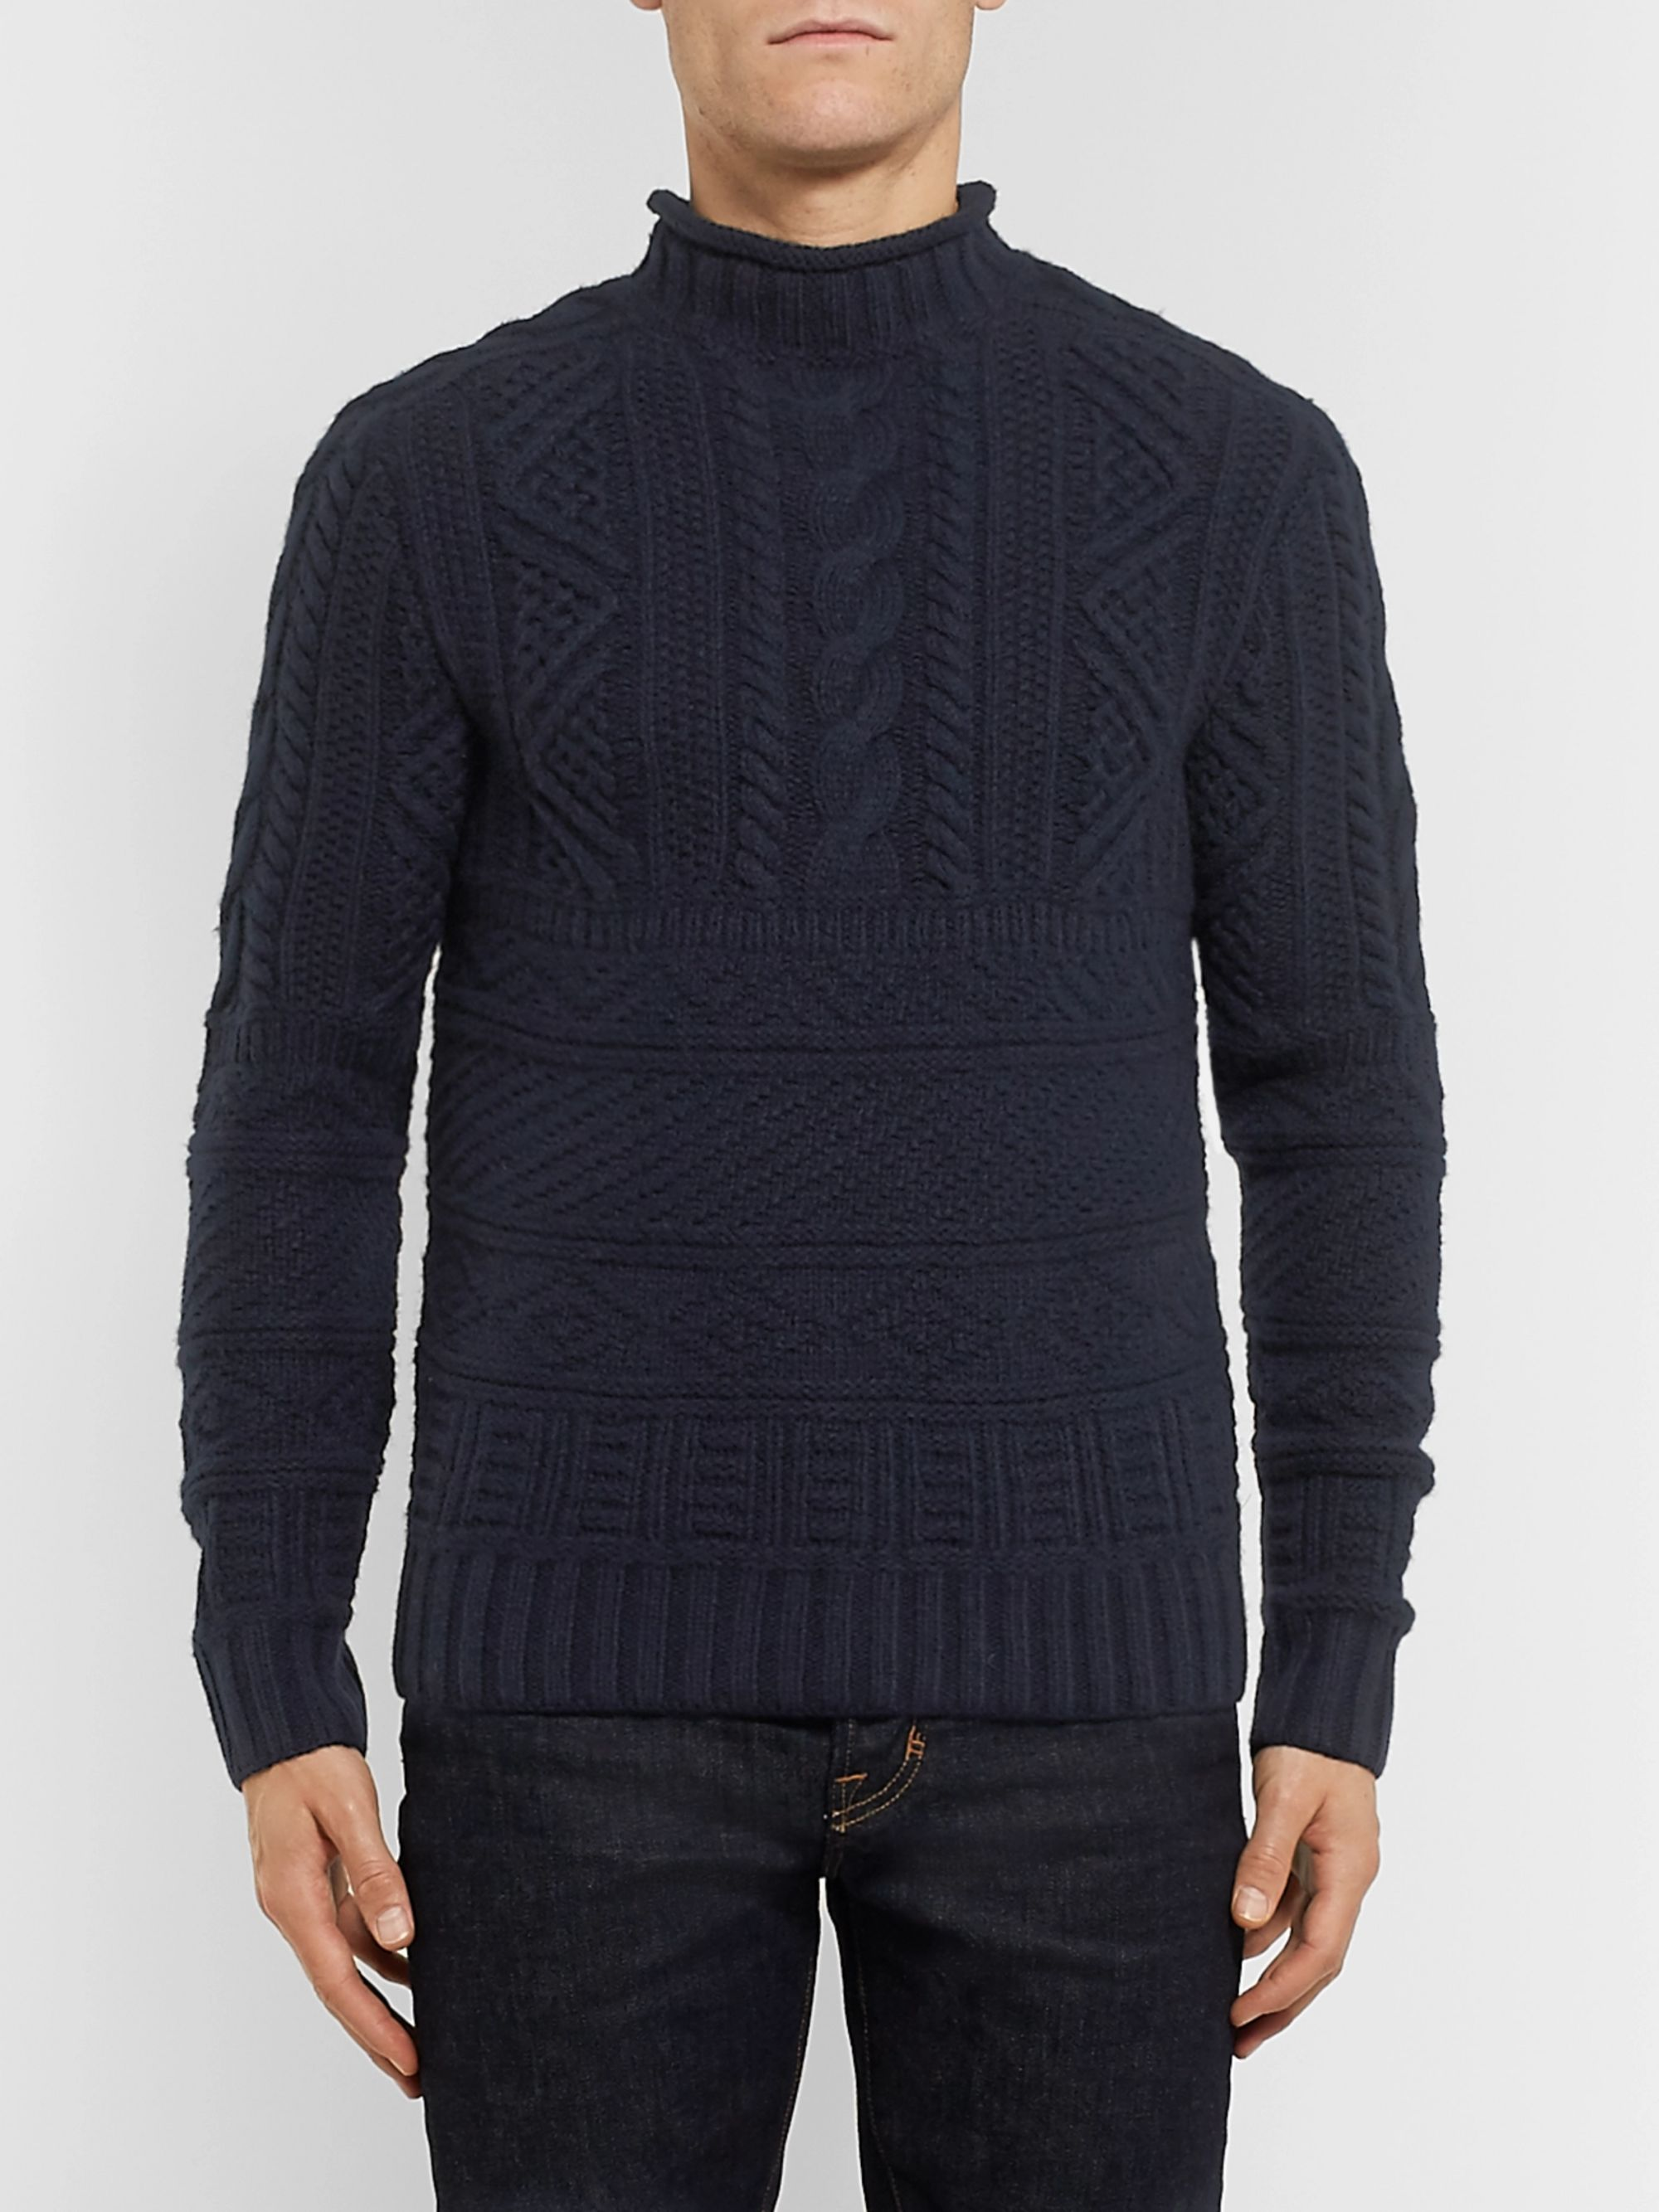 Ralph Lauren Purple Label Cable-Knit Wool and Cashmere-Blend Mock-Neck Sweater